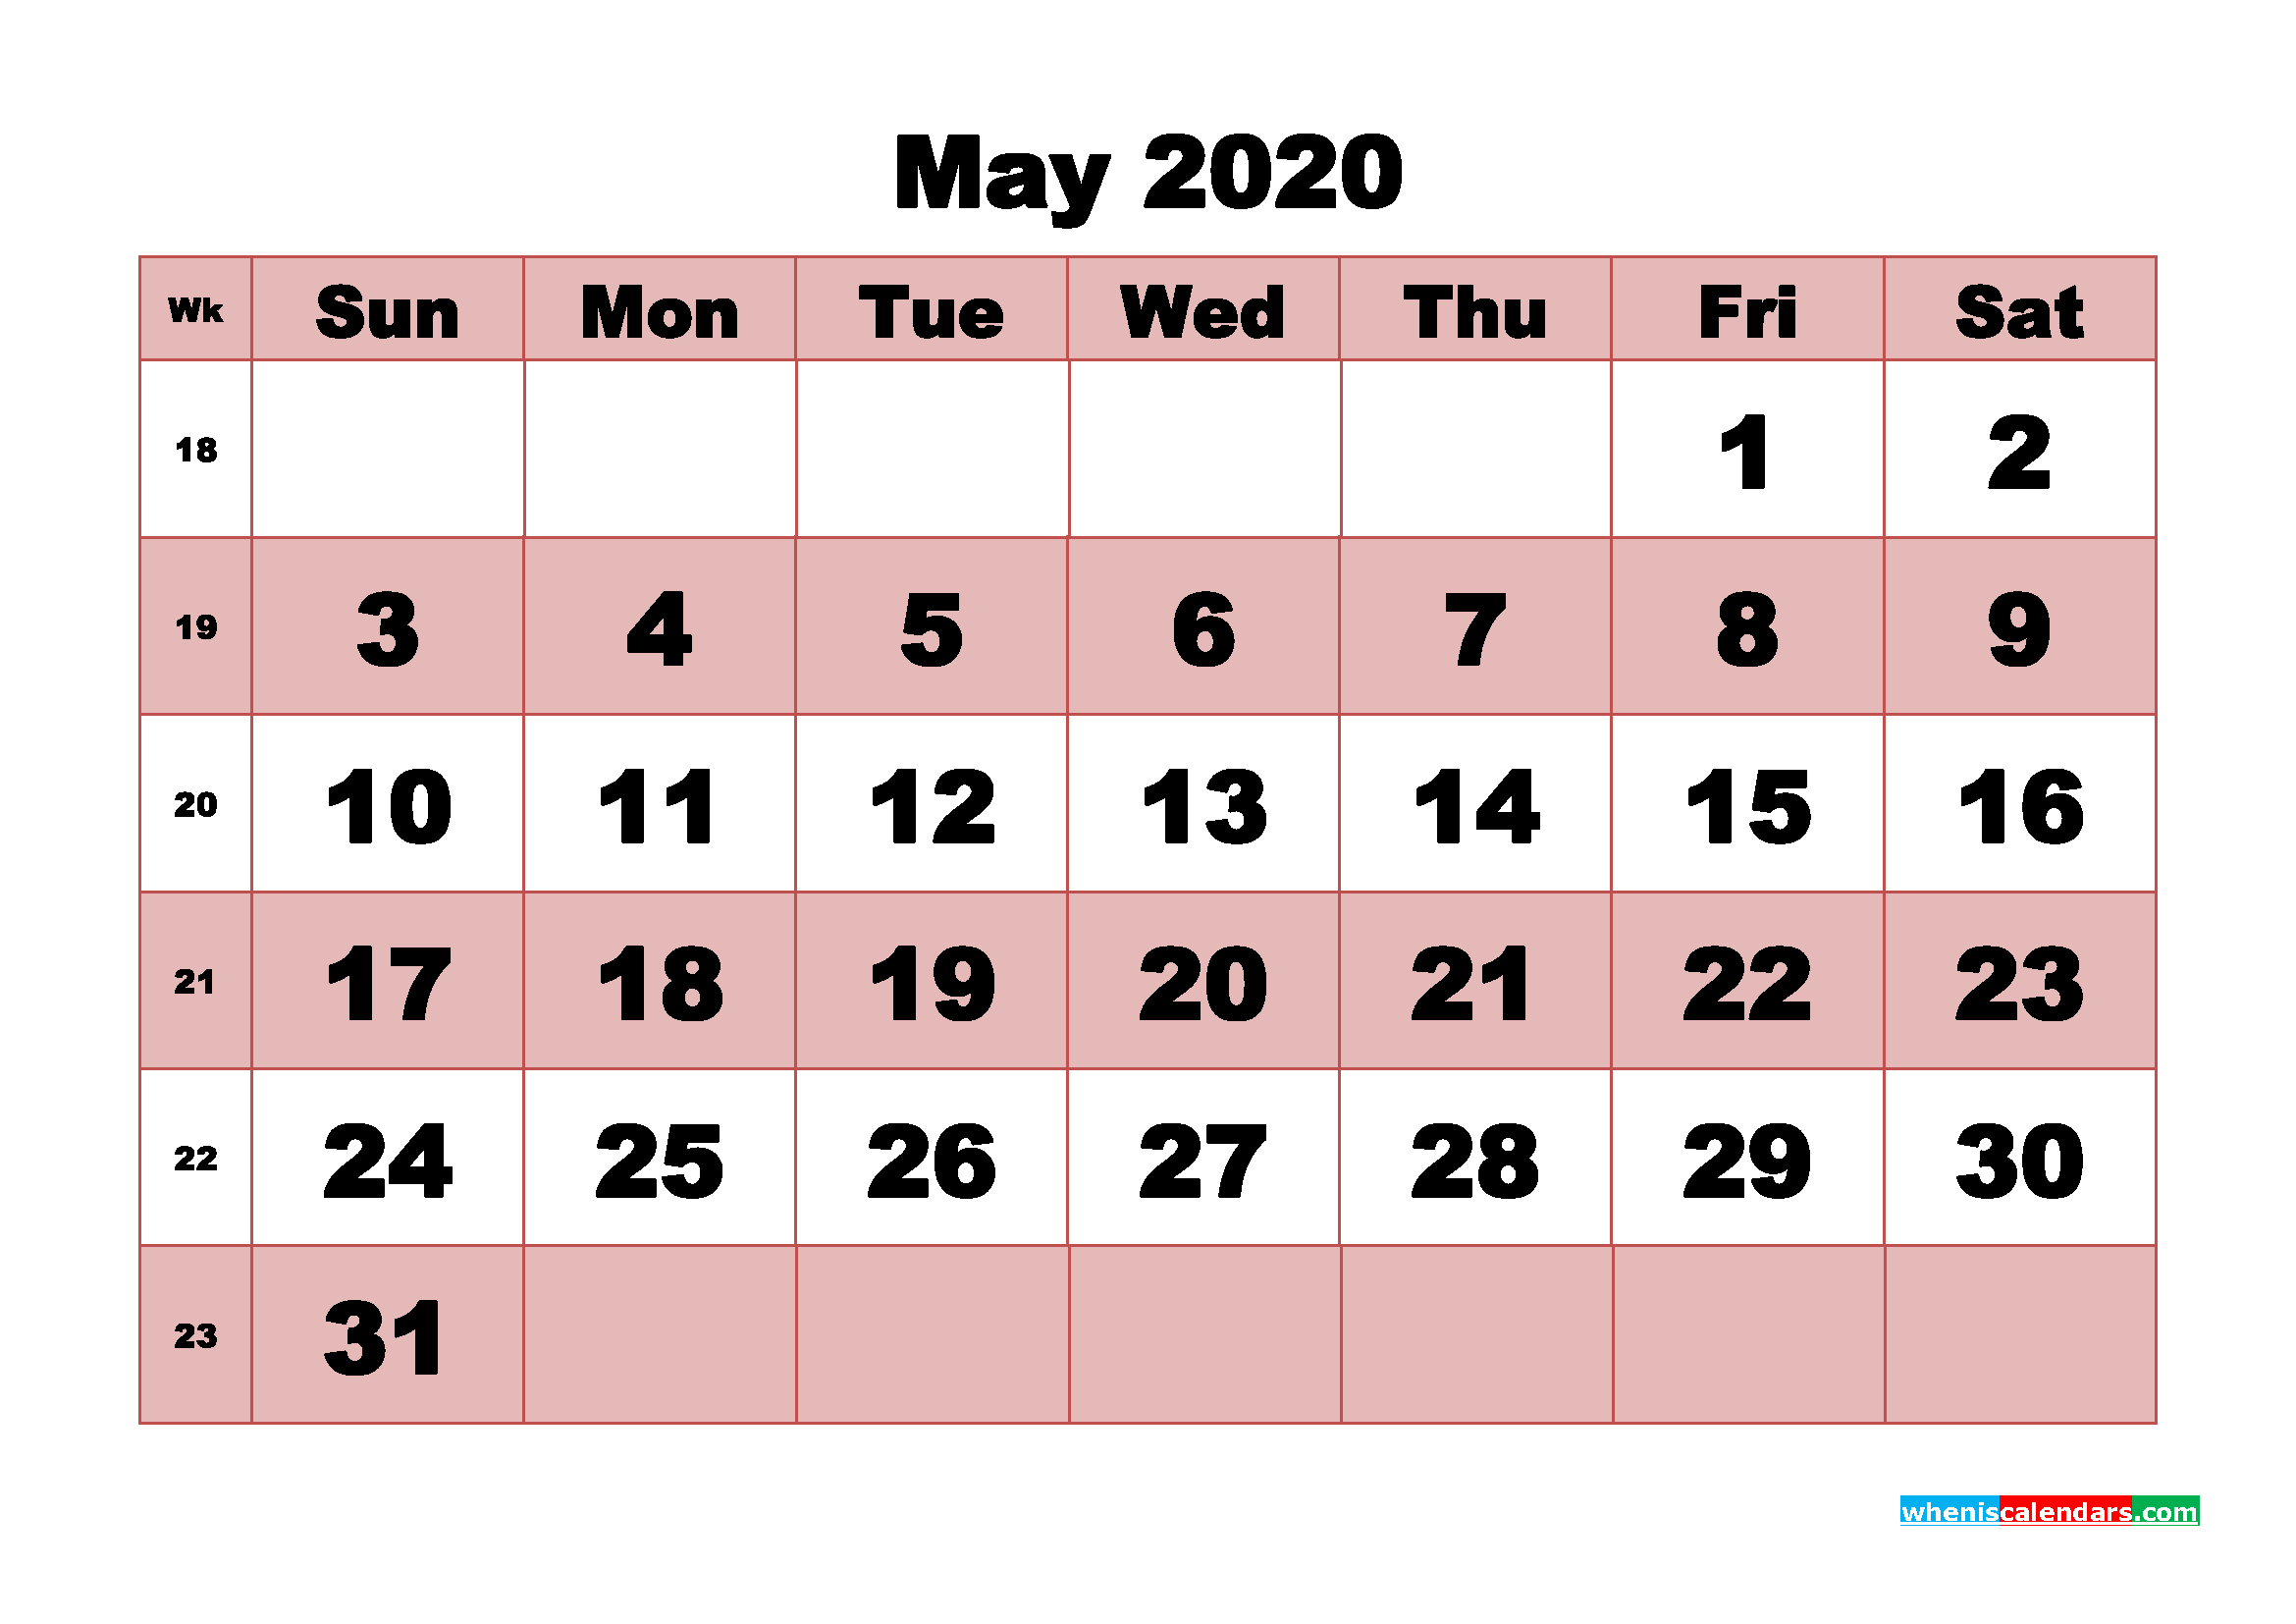 Printable Monthly Calendar 2020 May with Week Numbers